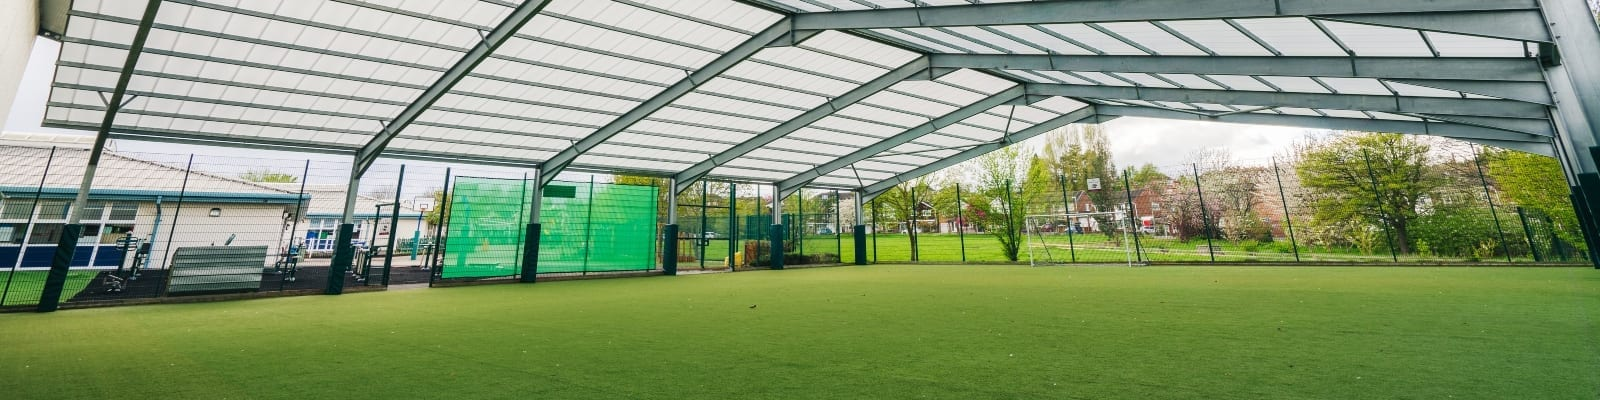 The Brier School Covered MUGA